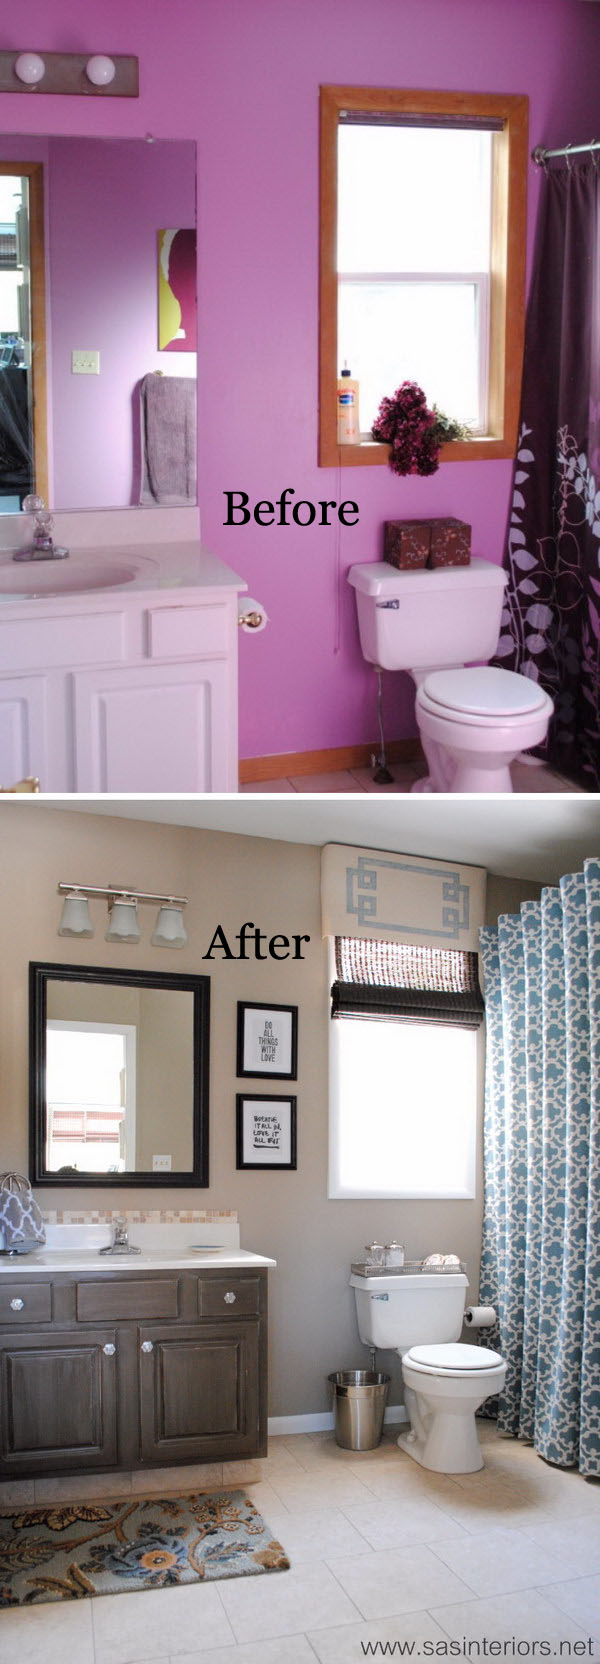 From Horrid Purple To Heavenly Gray and Beige Small Bathroom Makeover Before After